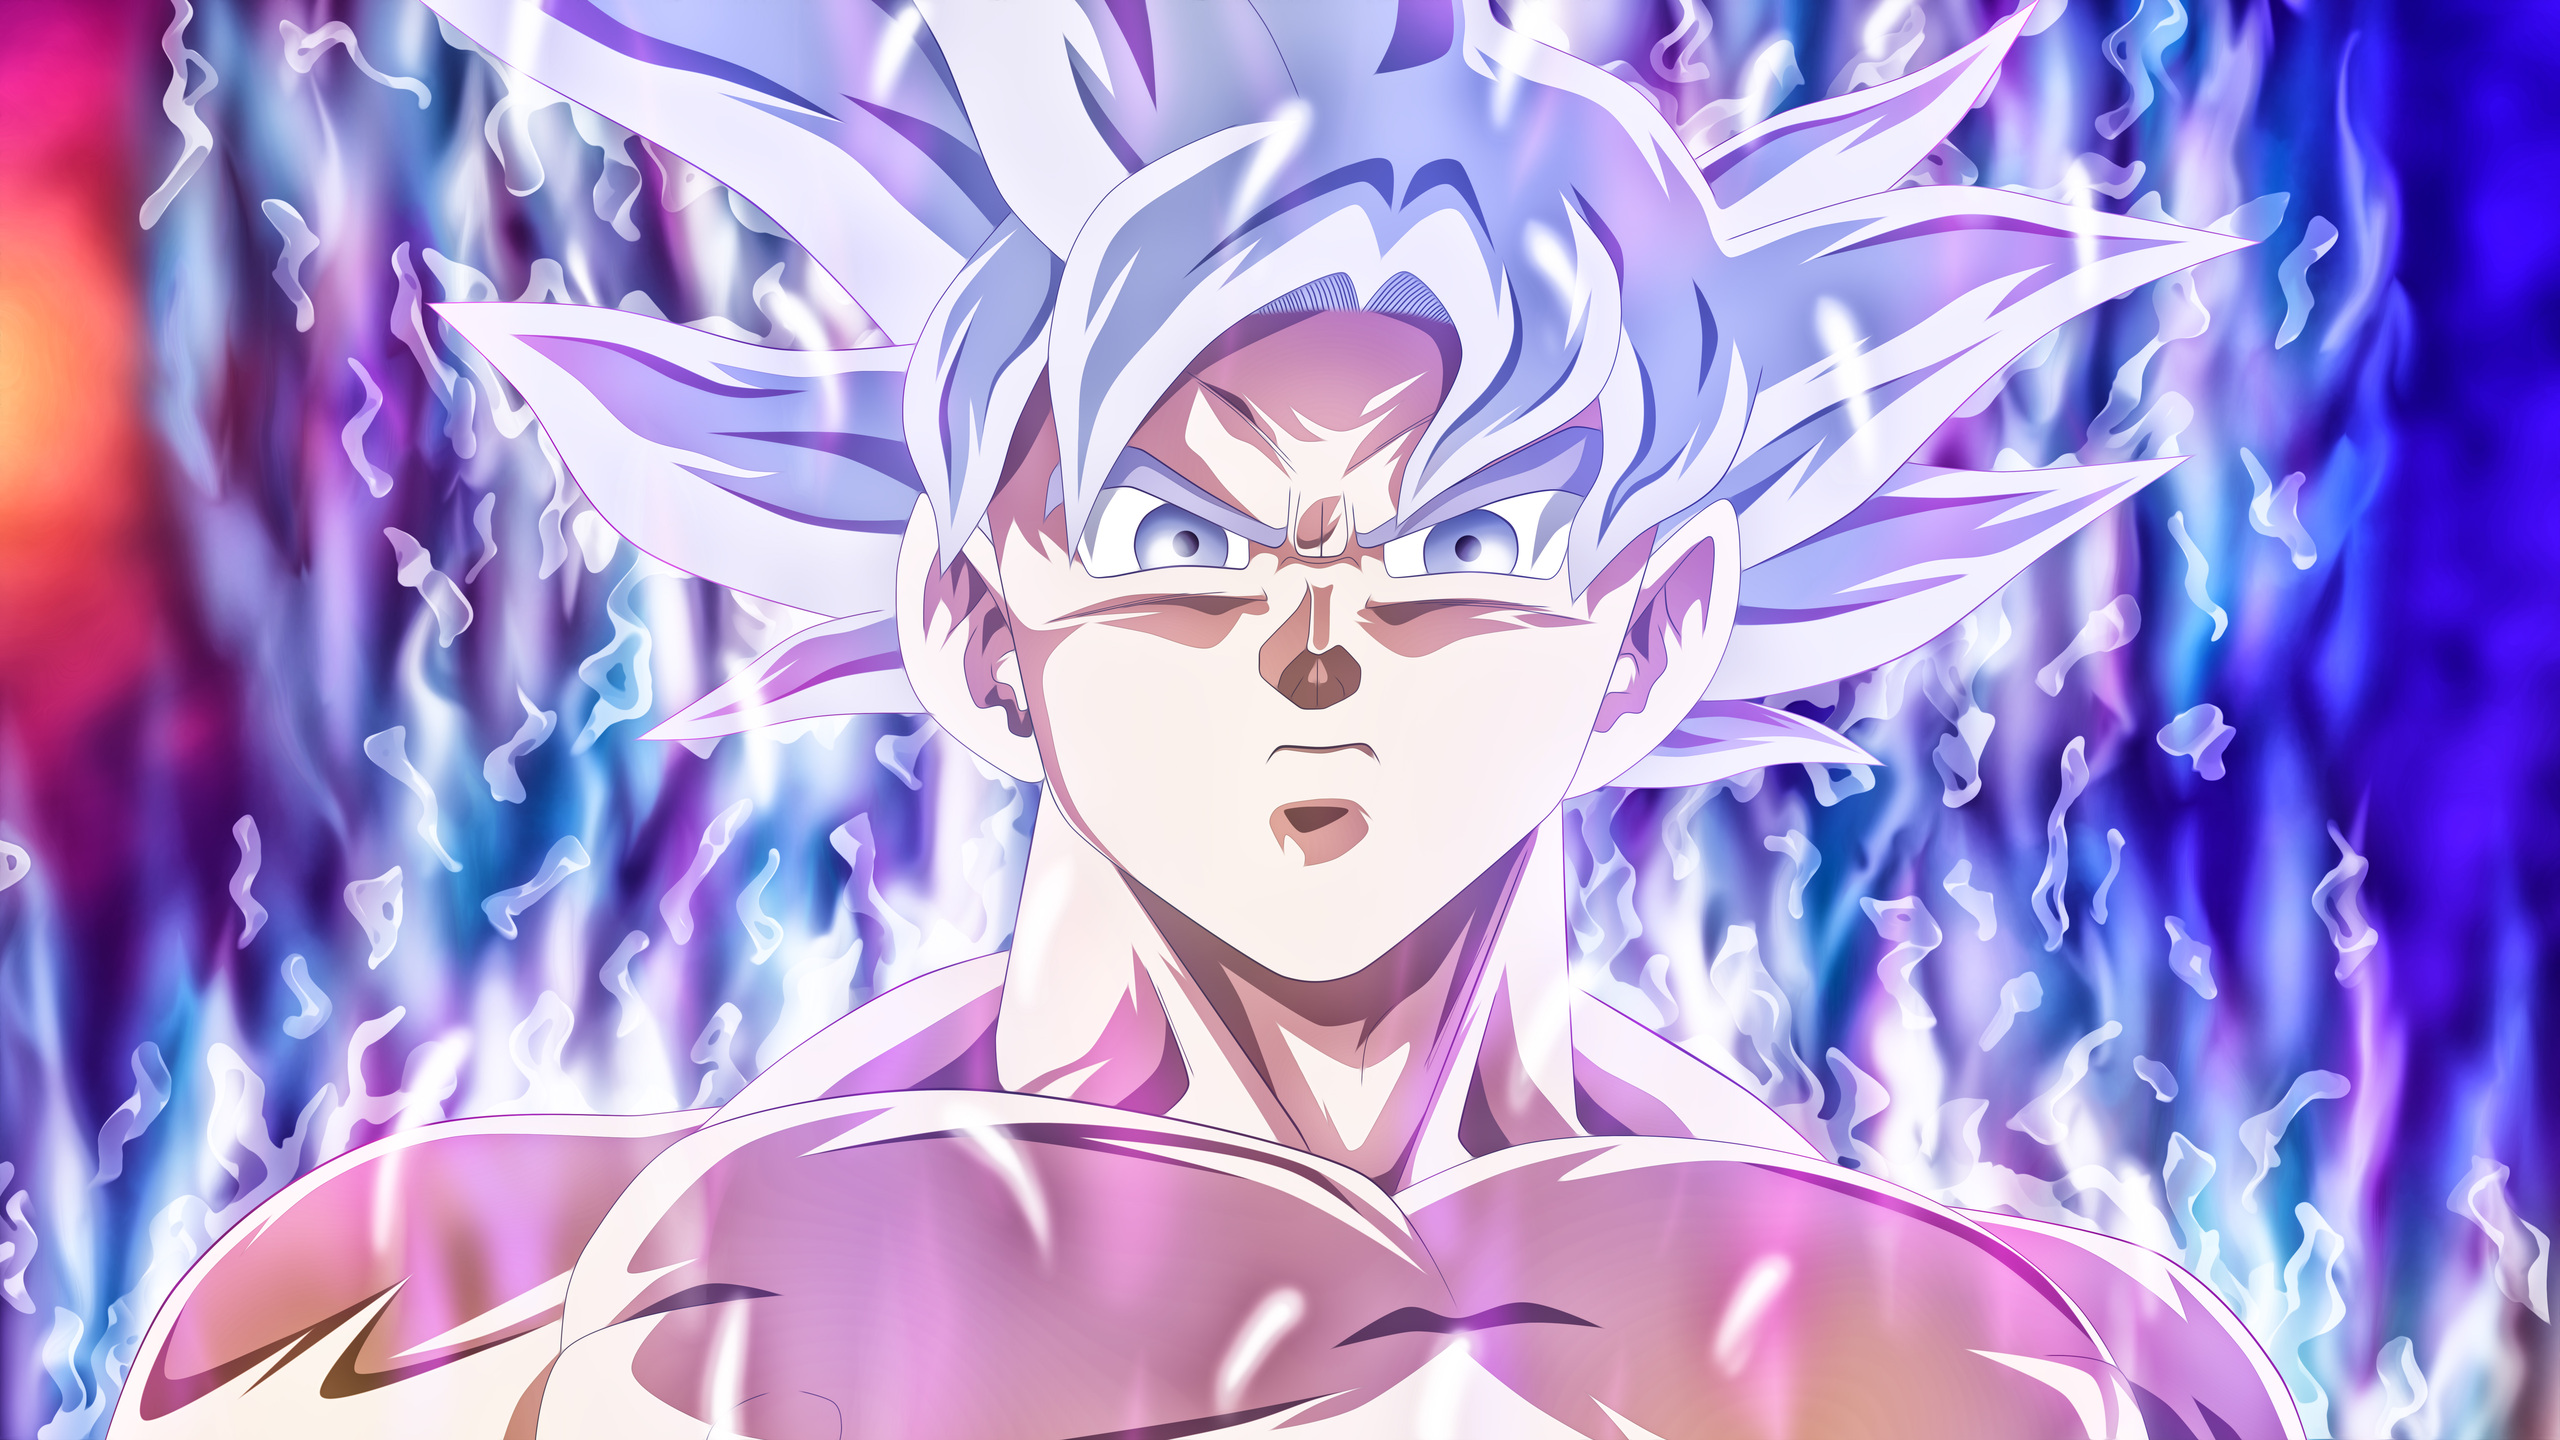 Goku Ultra Instinct Wallpaper 1080p: 2560x1440 Goku Mastered Ultra Instinct 1440P Resolution HD